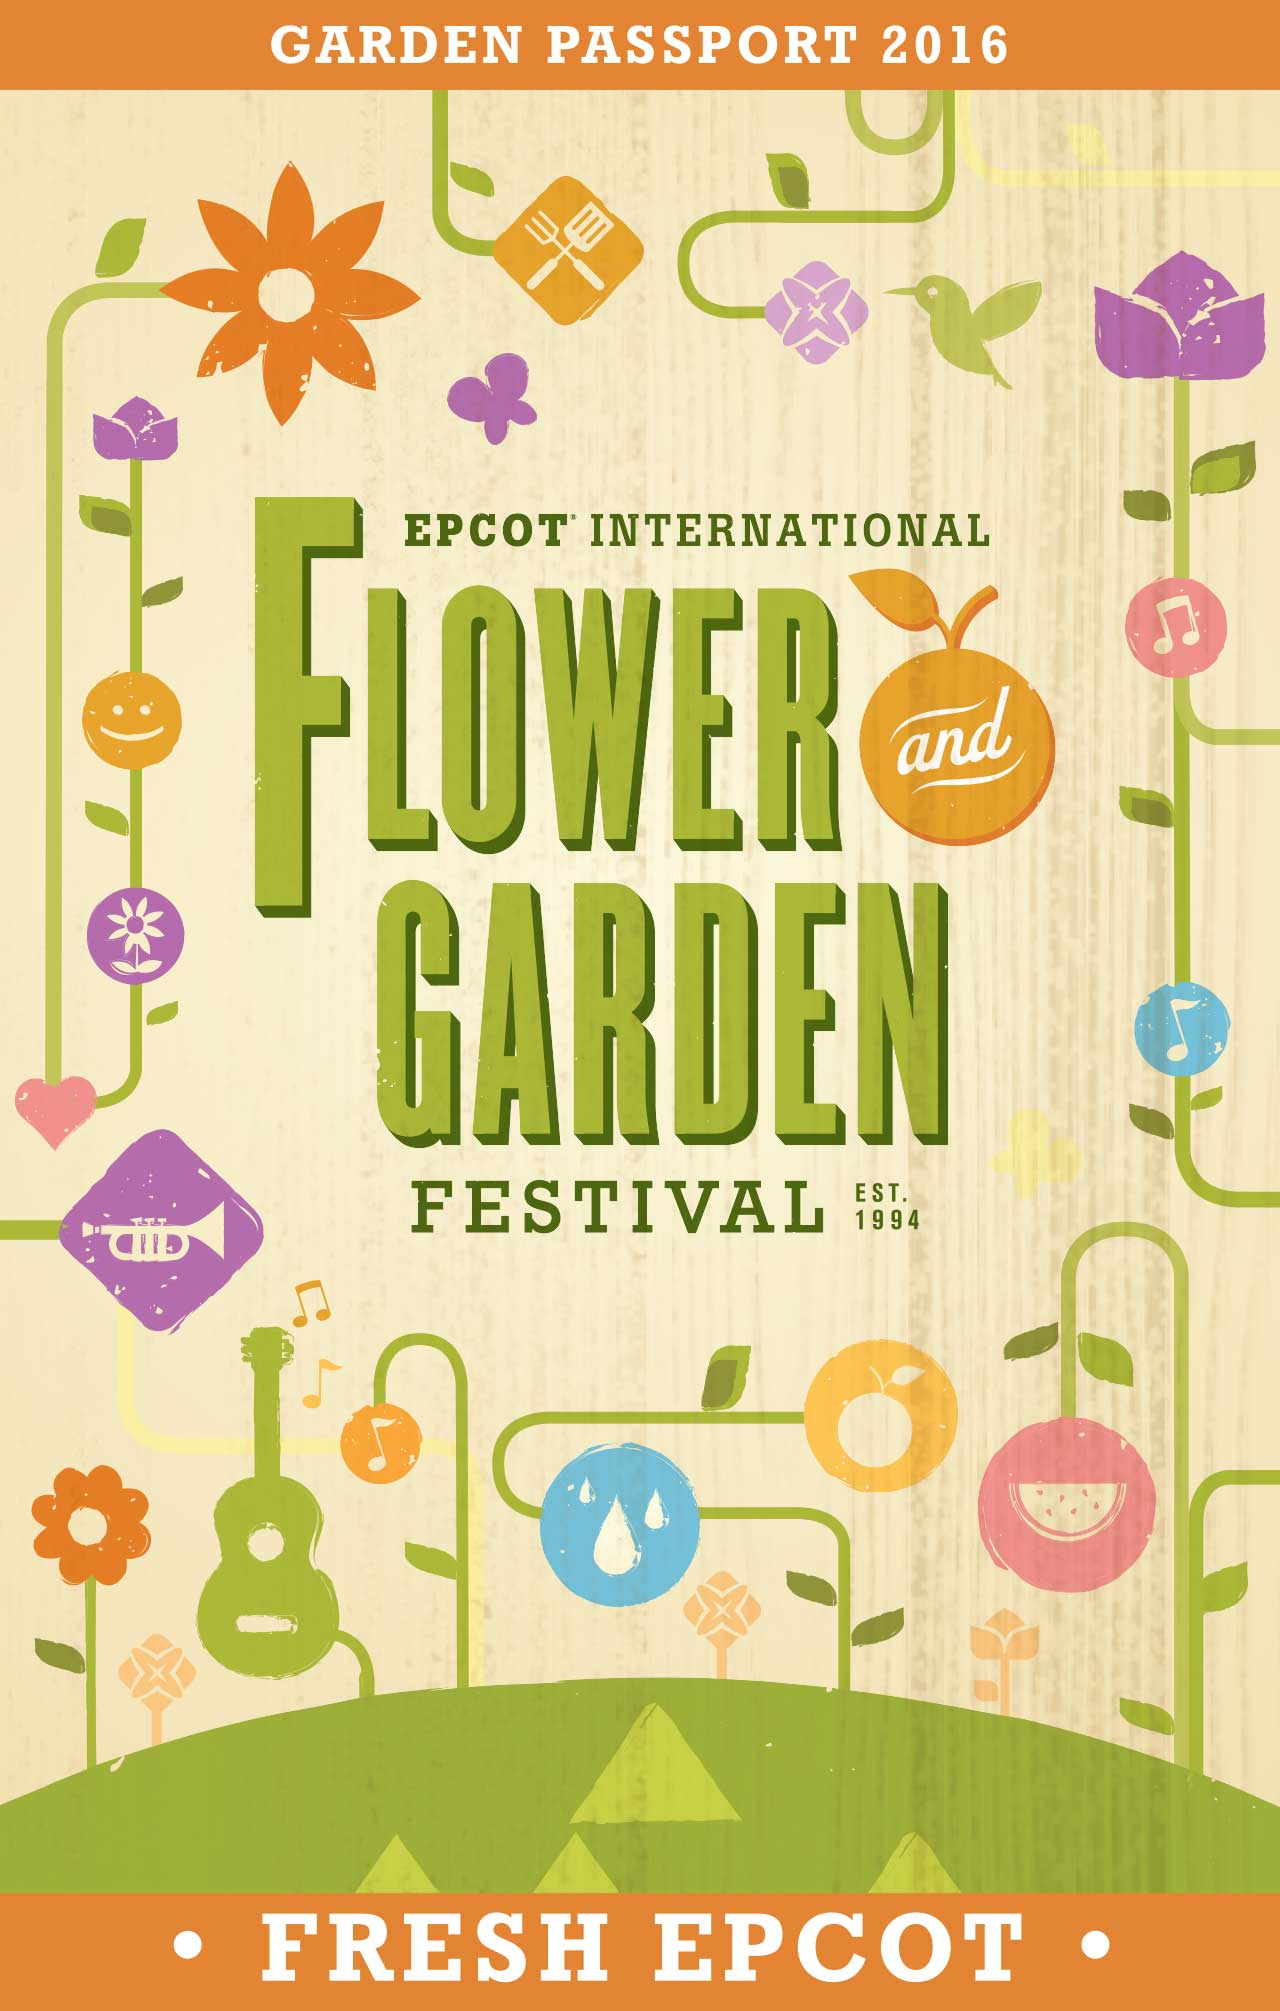 2016 Epcot Flower and Garden Festival passport